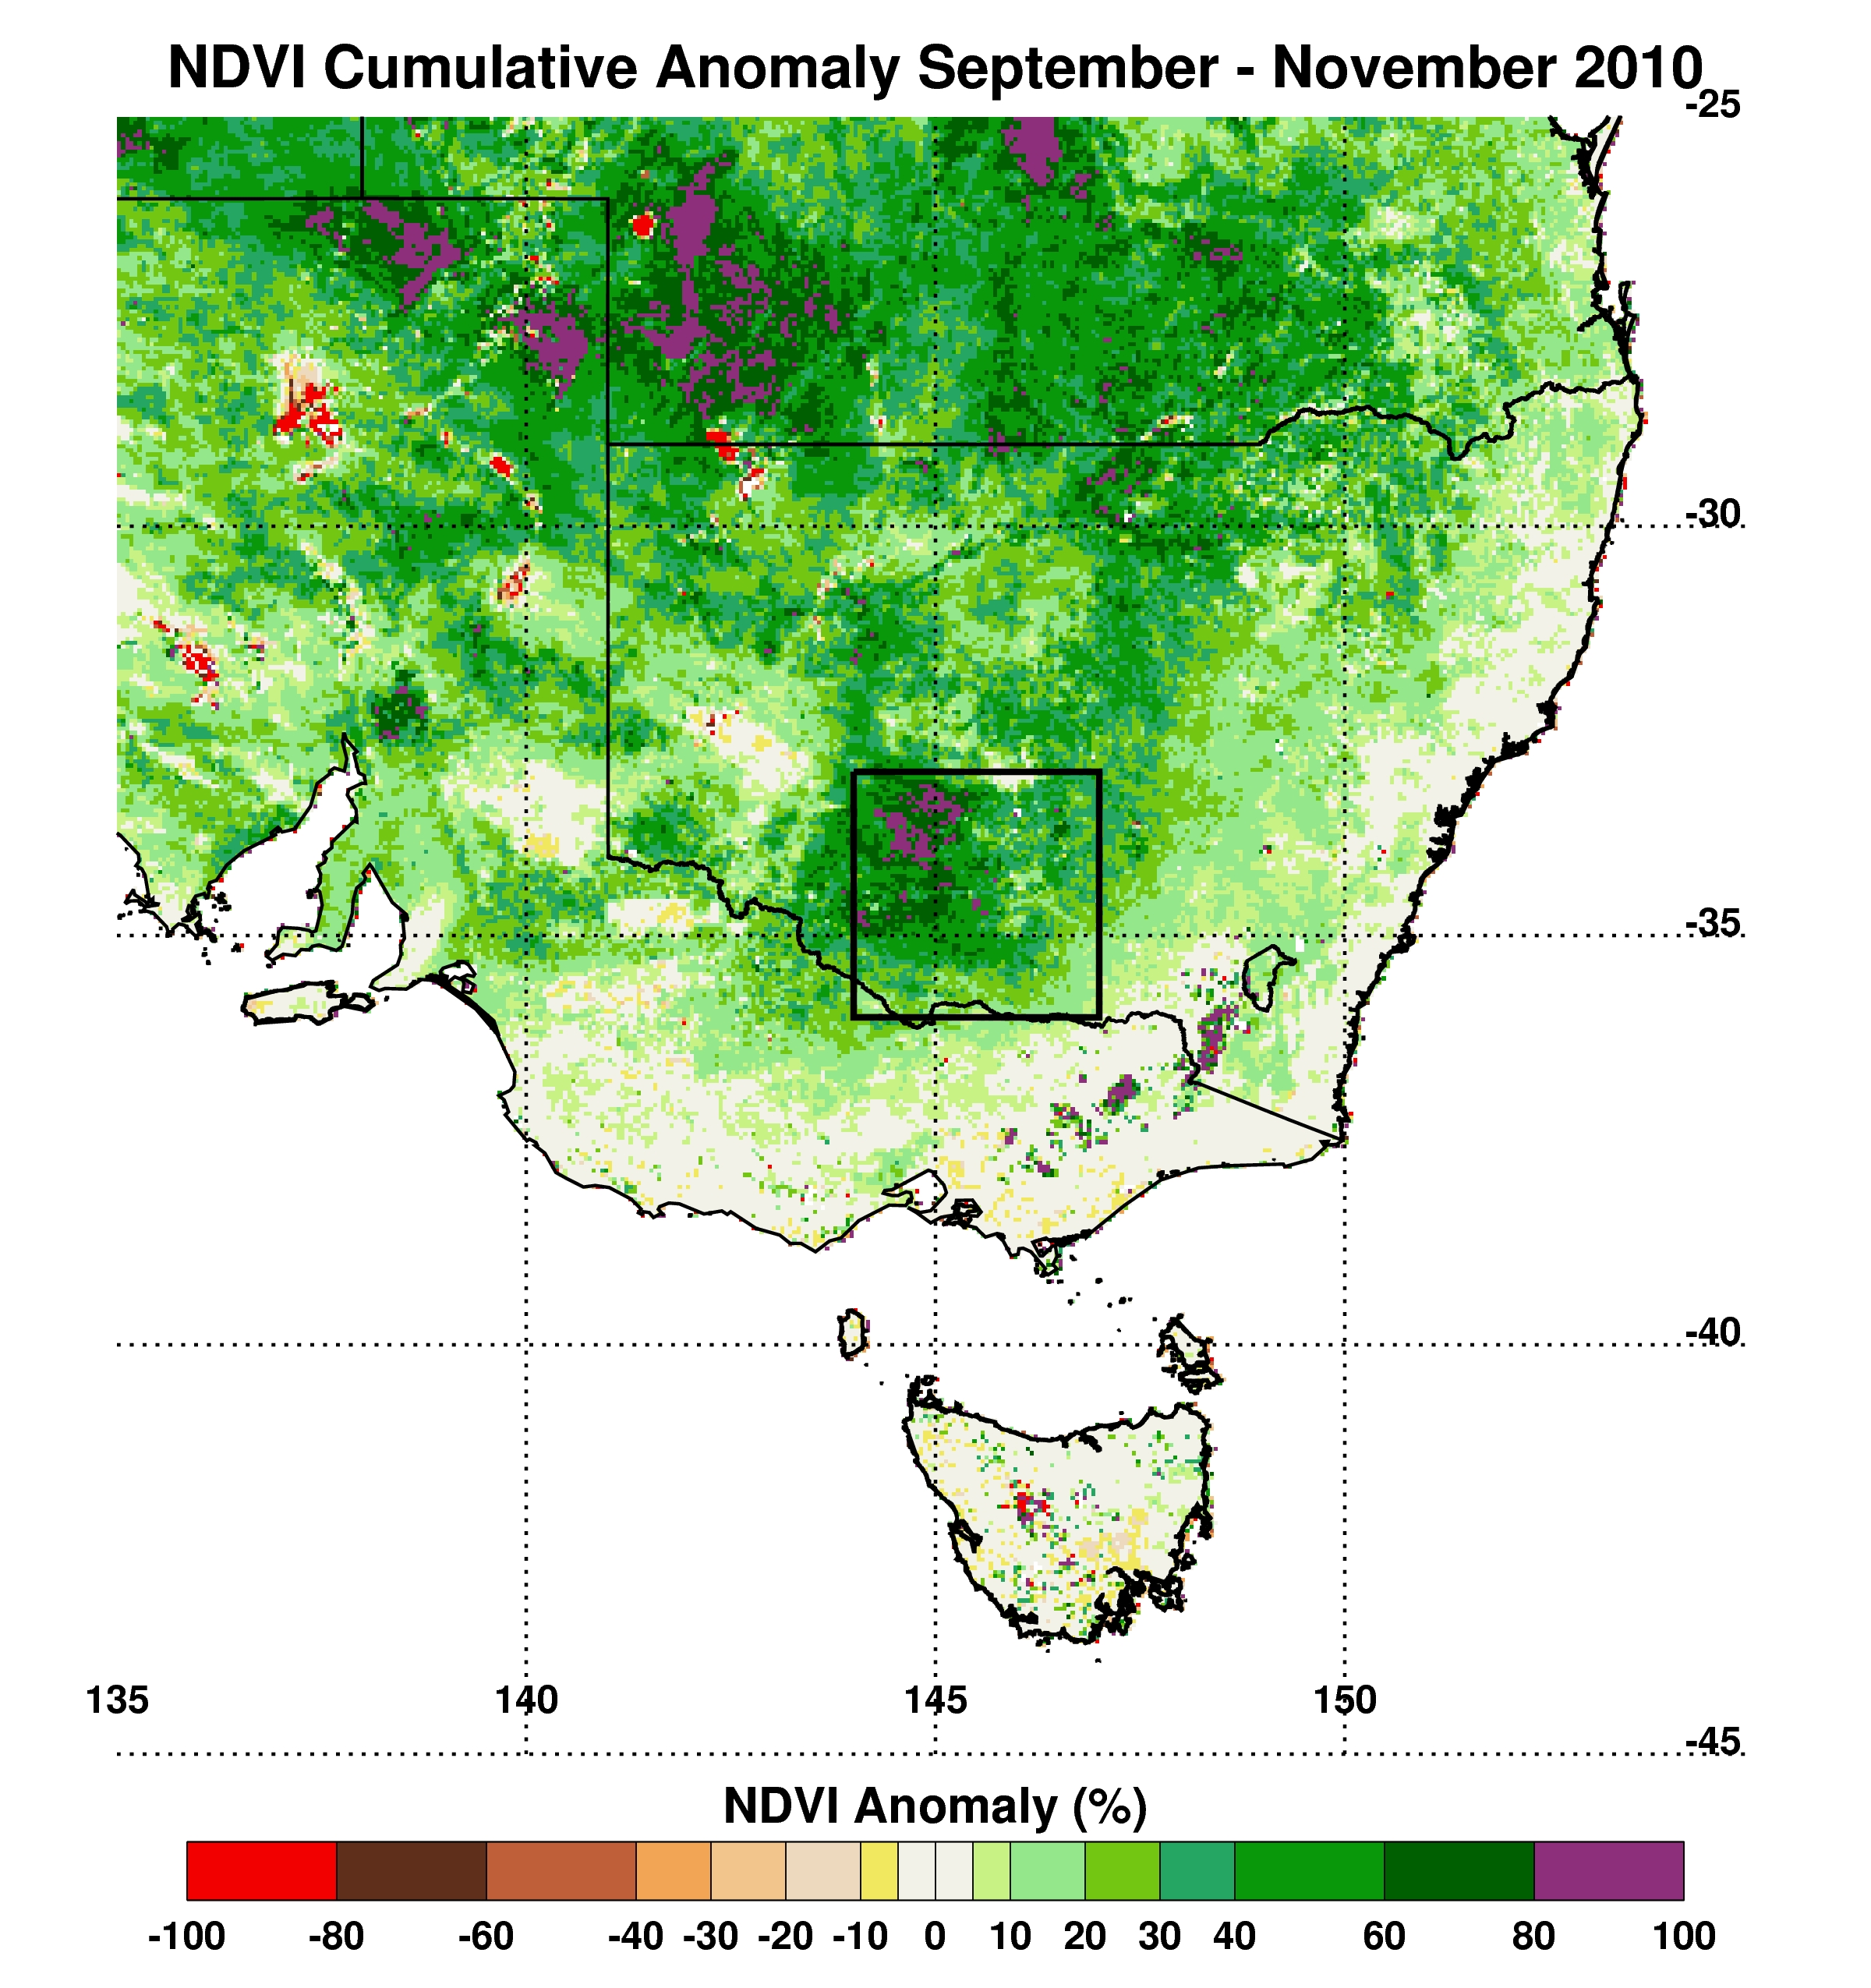 weather extremes take twin crop and disease toll simple climate using modis data of red and infra red emissions from the earth s surface assaf anyamba